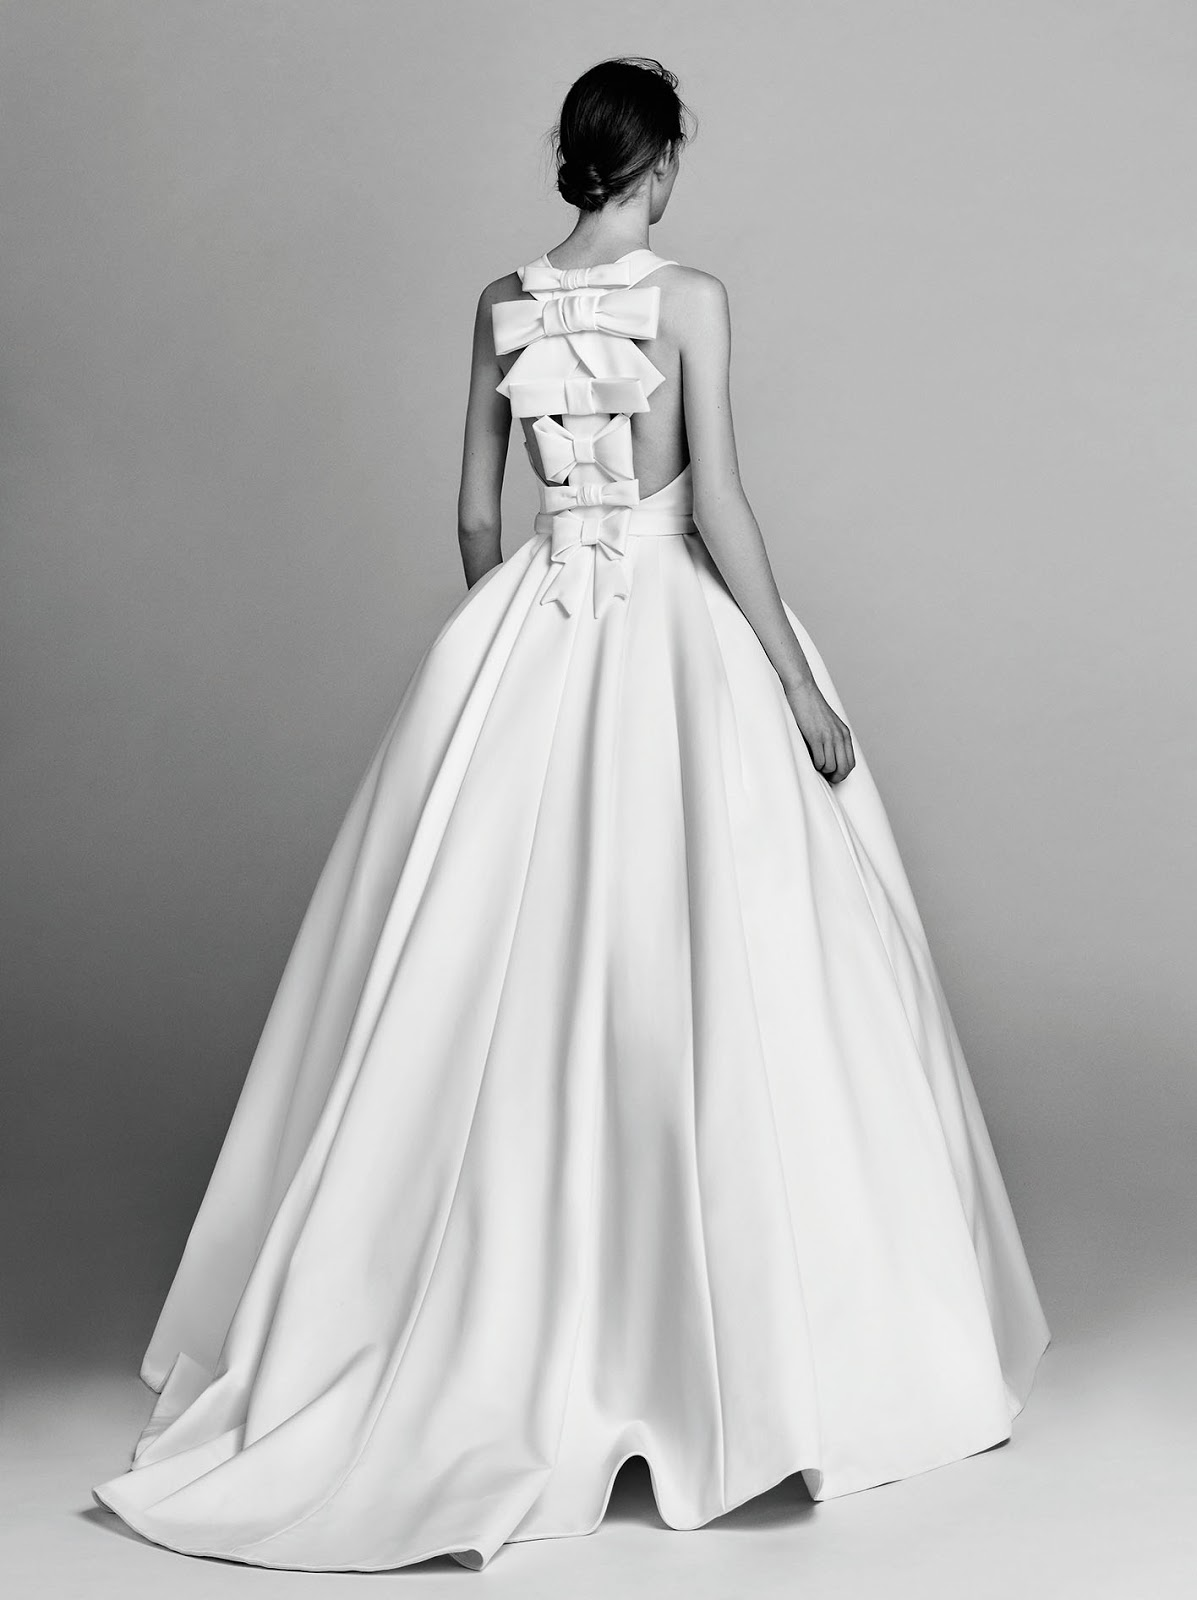 Victor And Rolf Fall 2017 Bridal Coleection